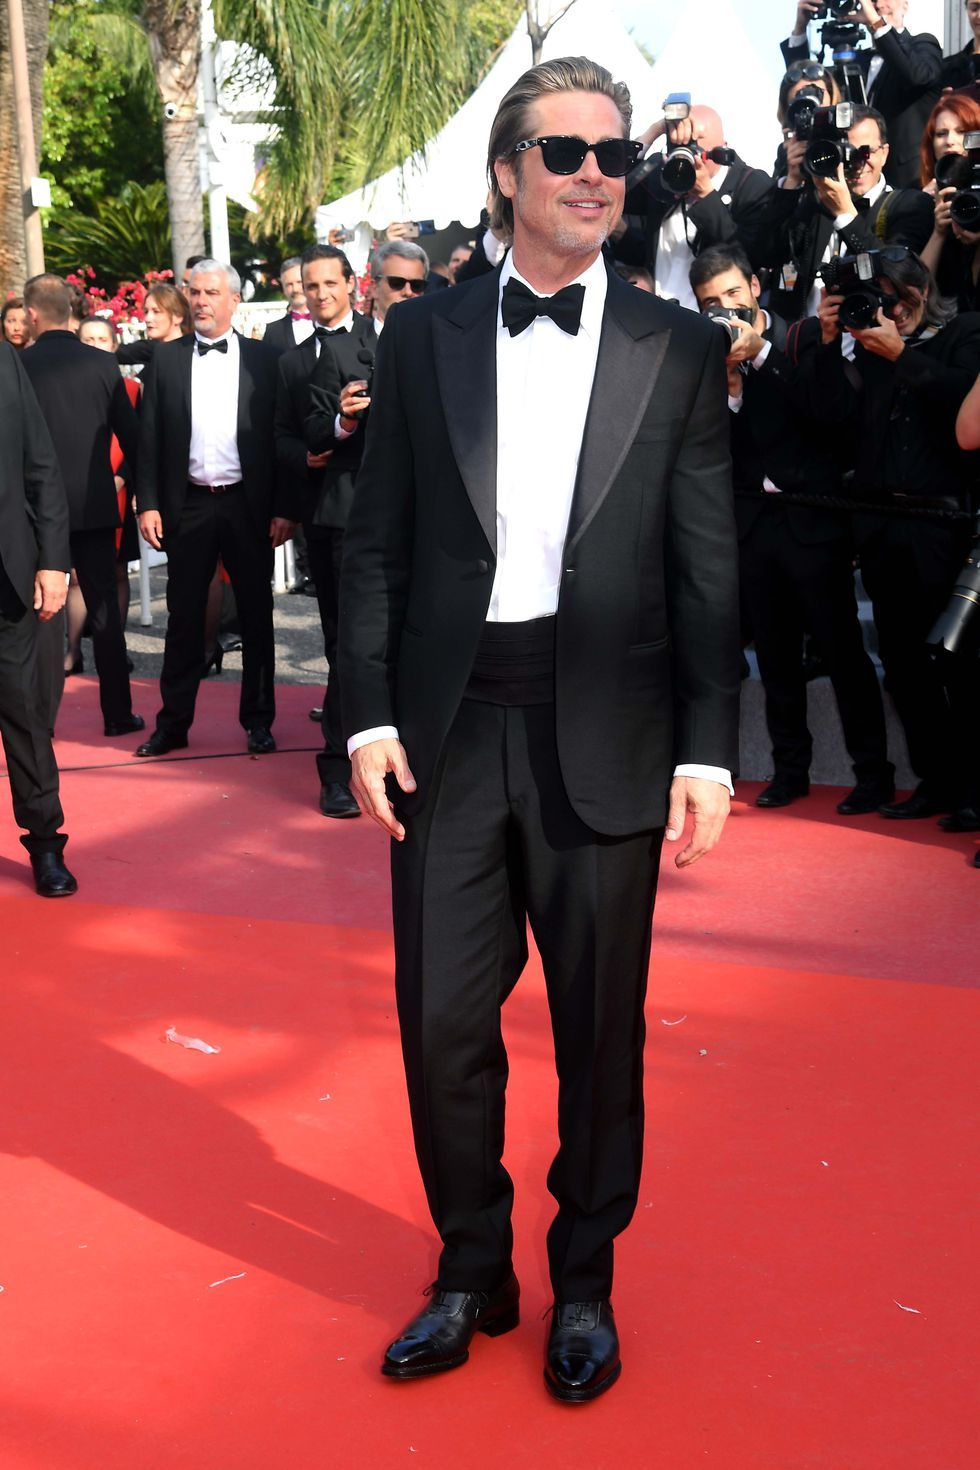 The Once Upon a Time in...Hollywood Red Carpet at Cannes Is Just as Stylish as You'd Expect